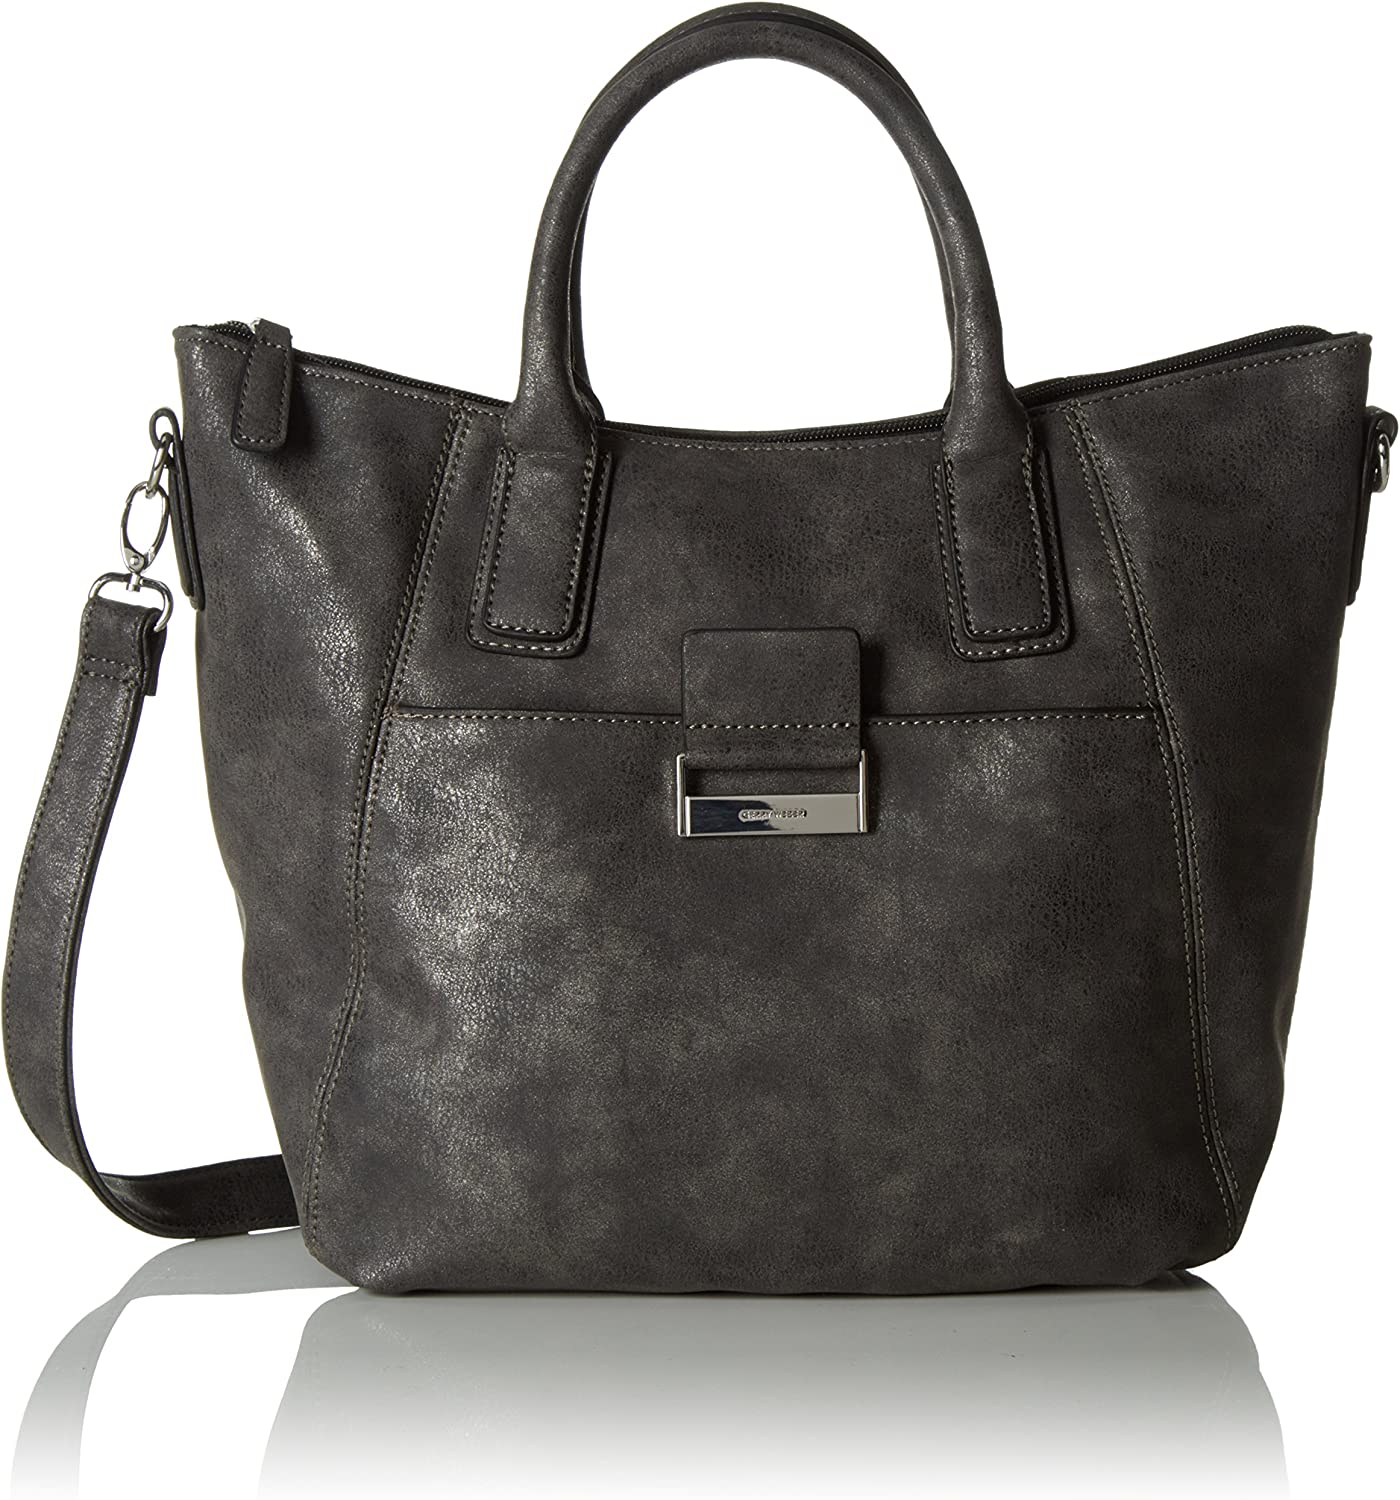 Gerry Weber Be Different, Women's TopHandle Bag